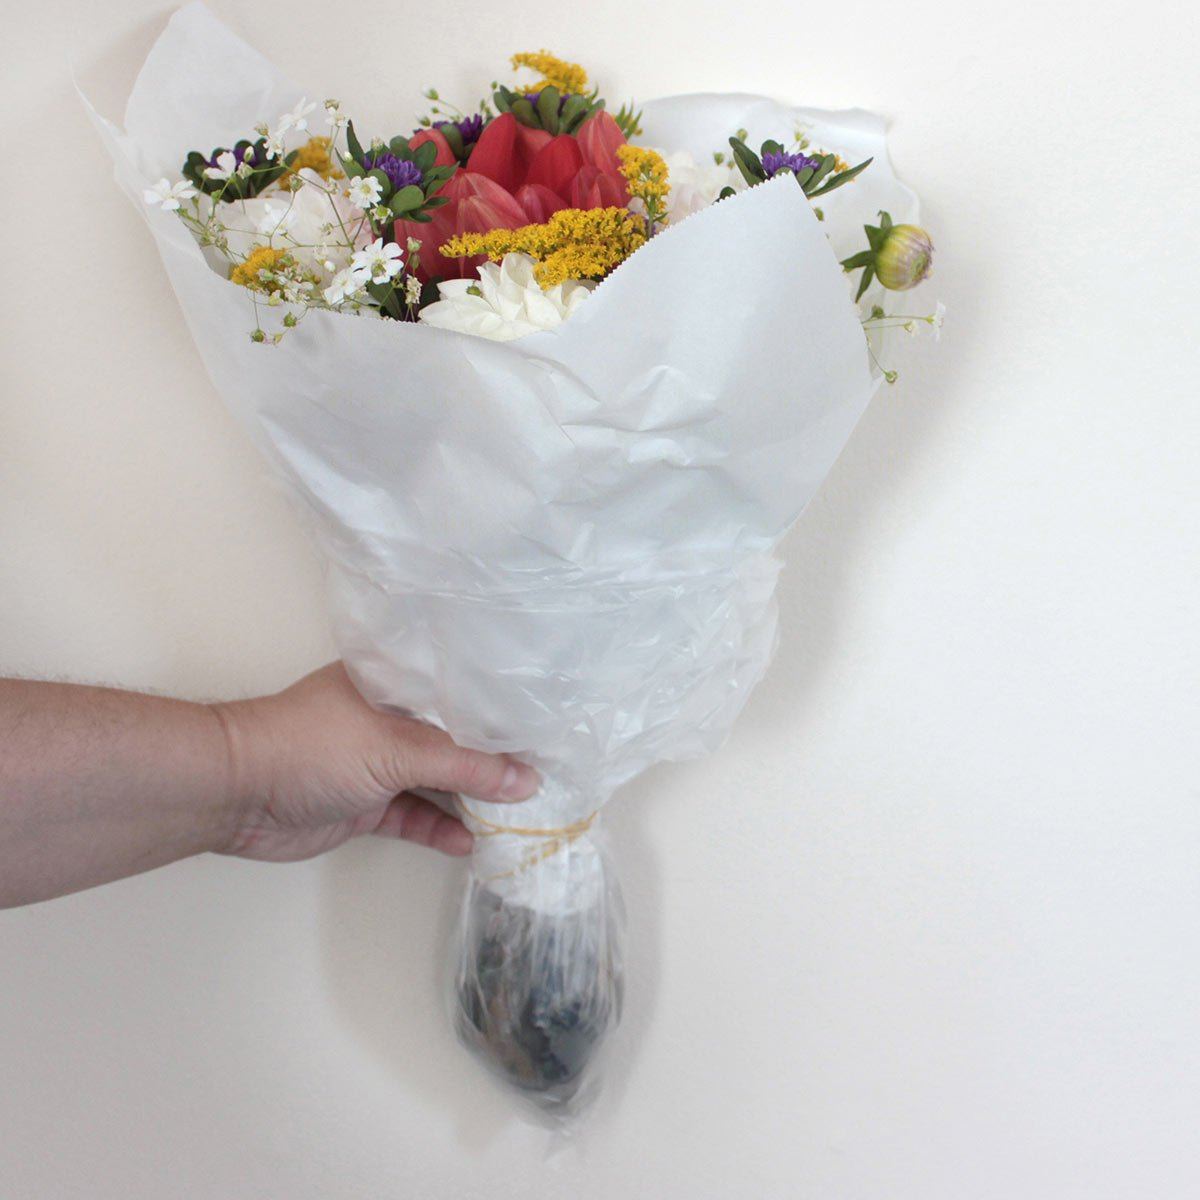 How to package a bouquet of cut flowers that will last for days